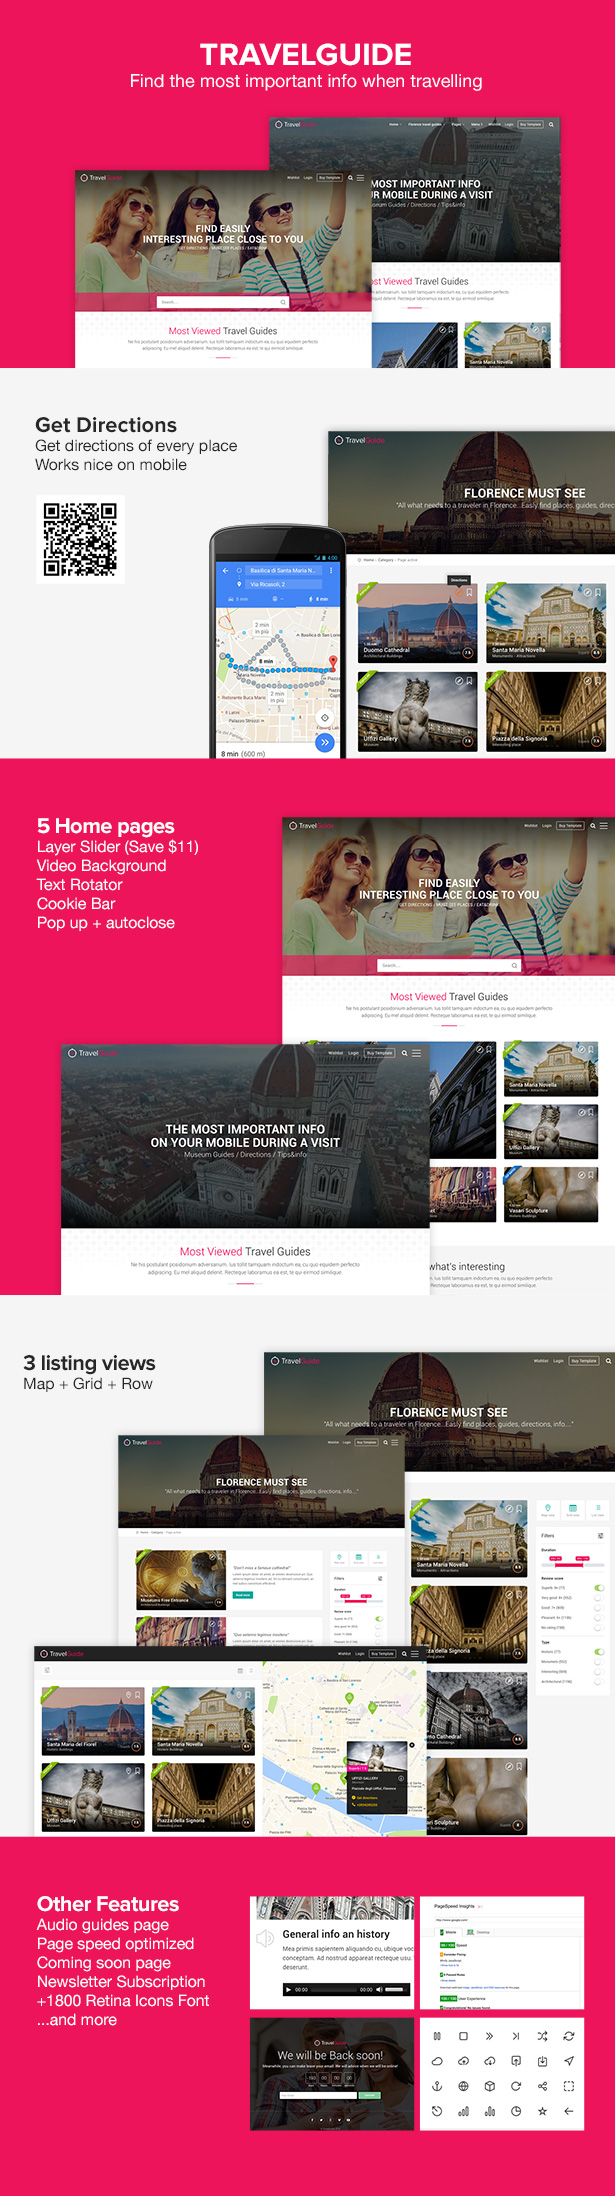 Latest Photo of  TRAVELGUIDE Guides, Places and Directions WordPress Theme